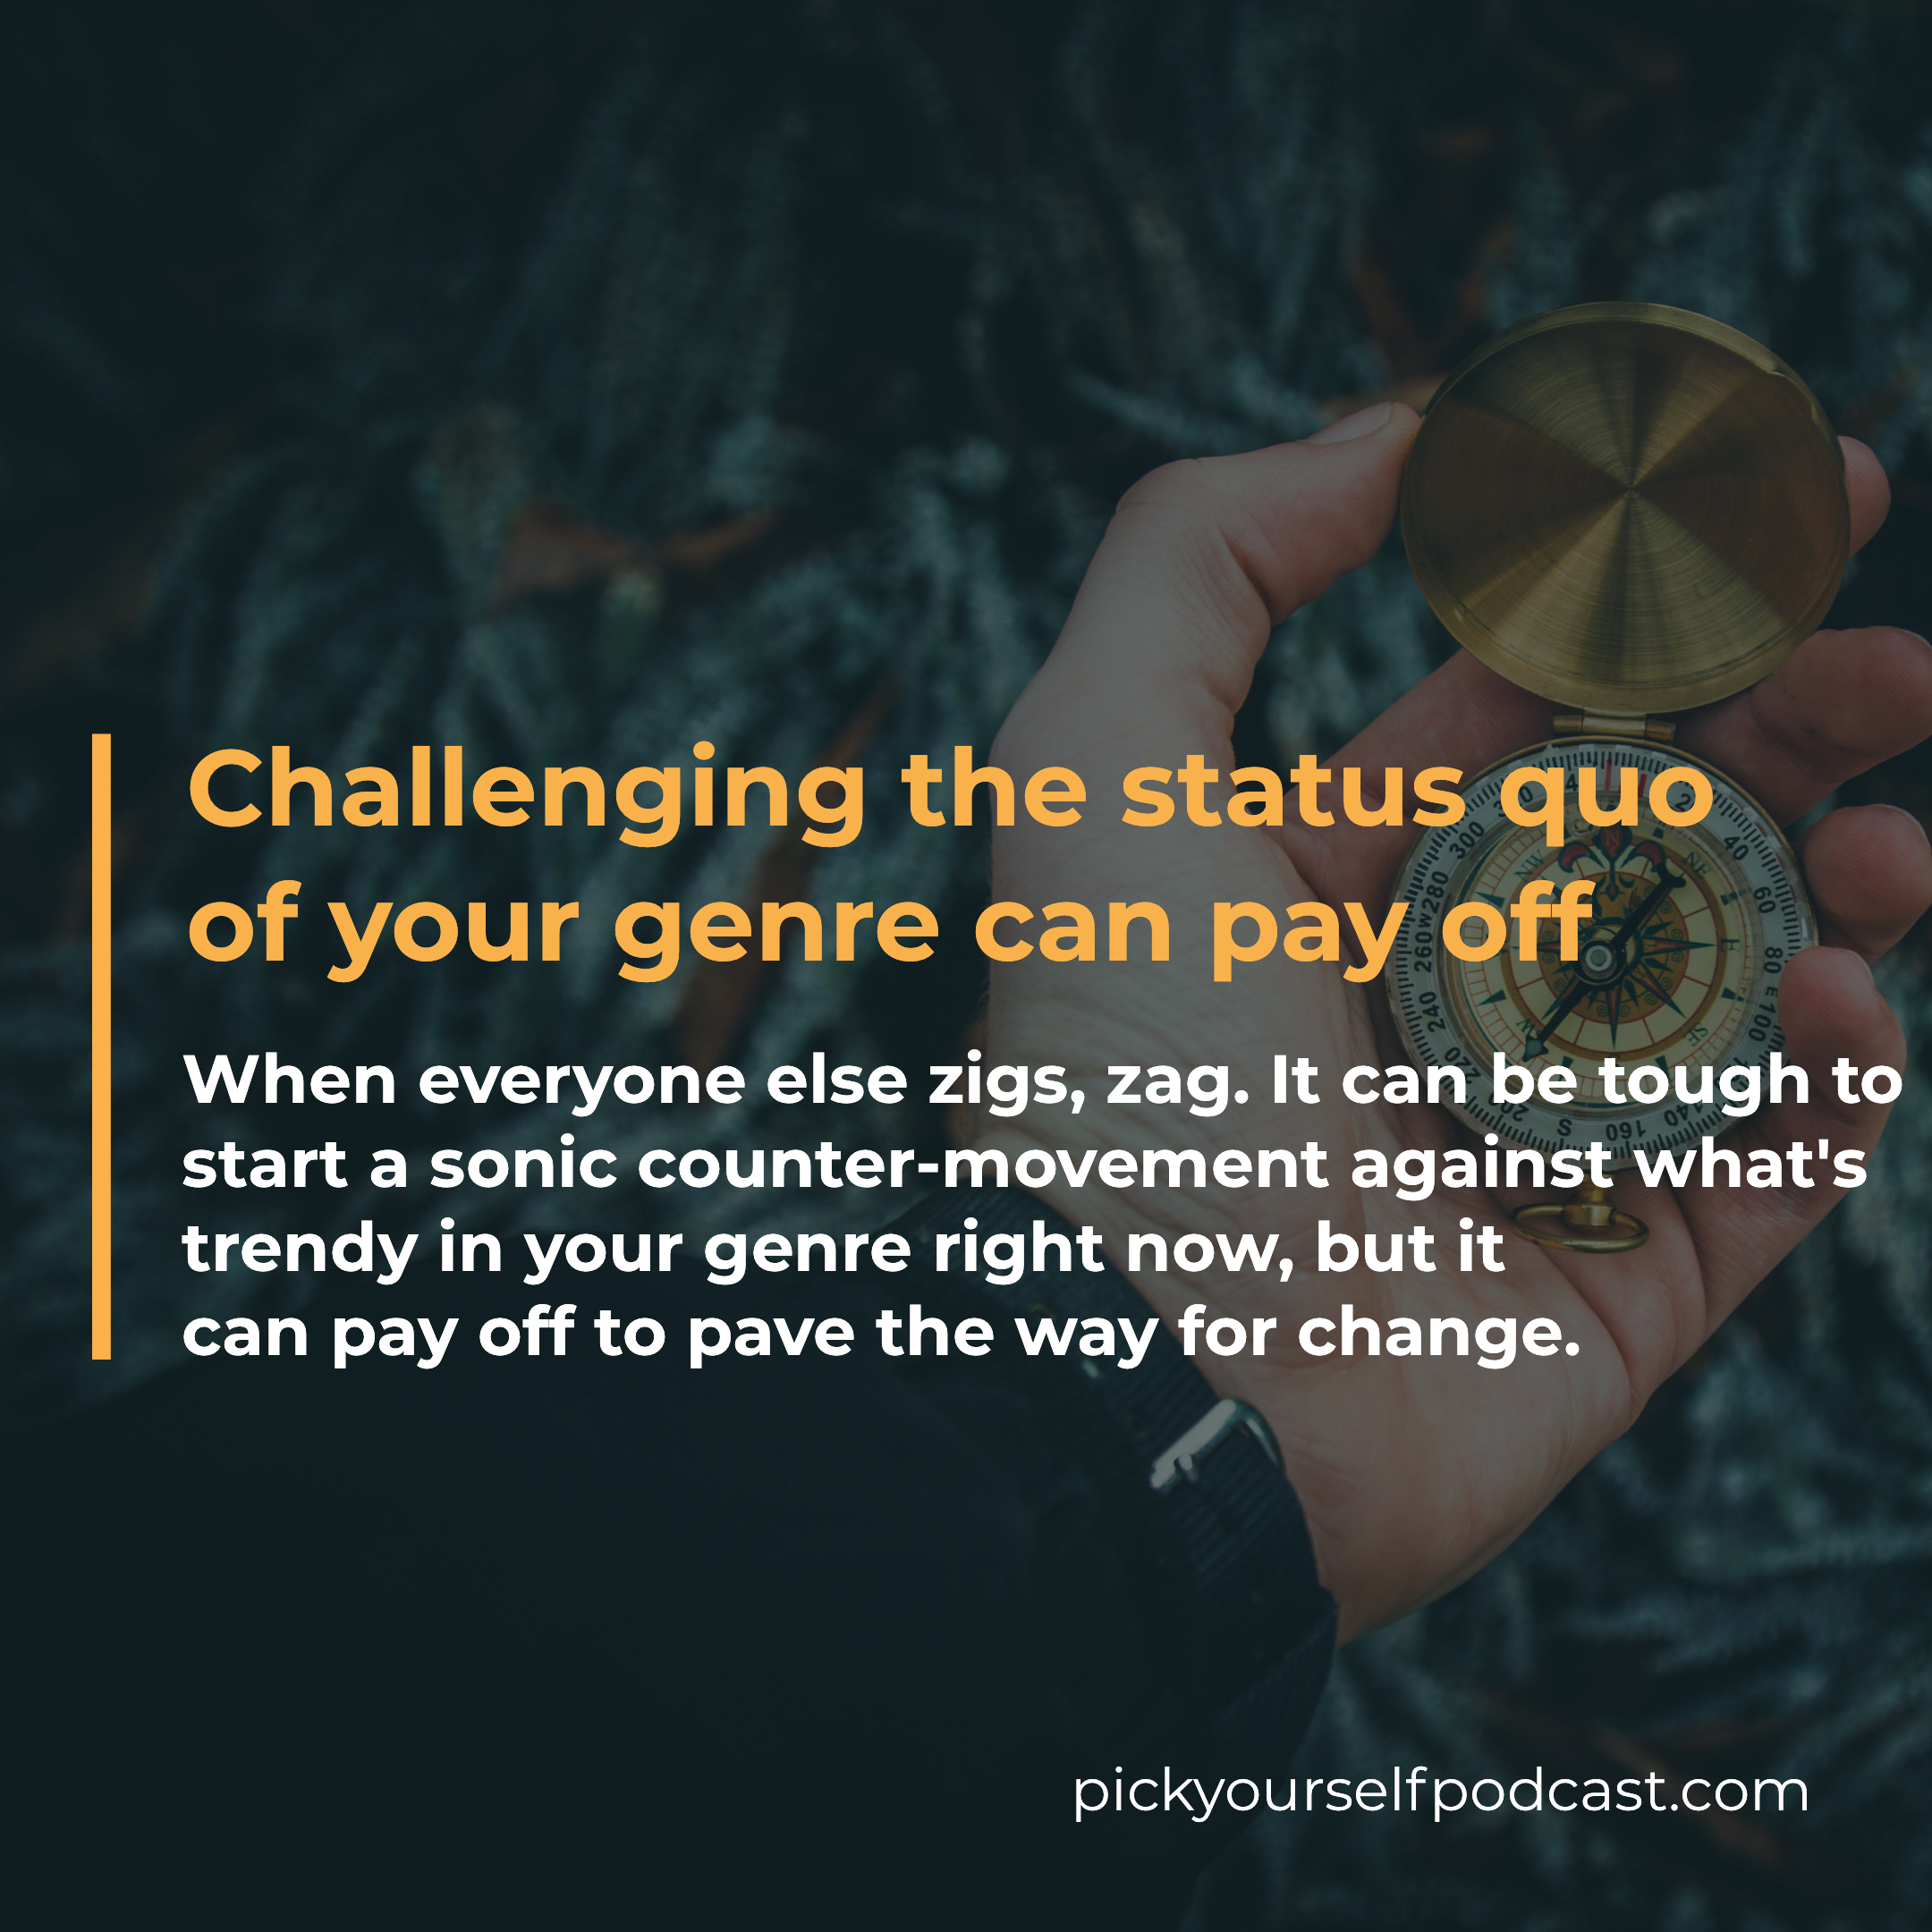 Challenging the status quo can also be a great music marketing strategy.